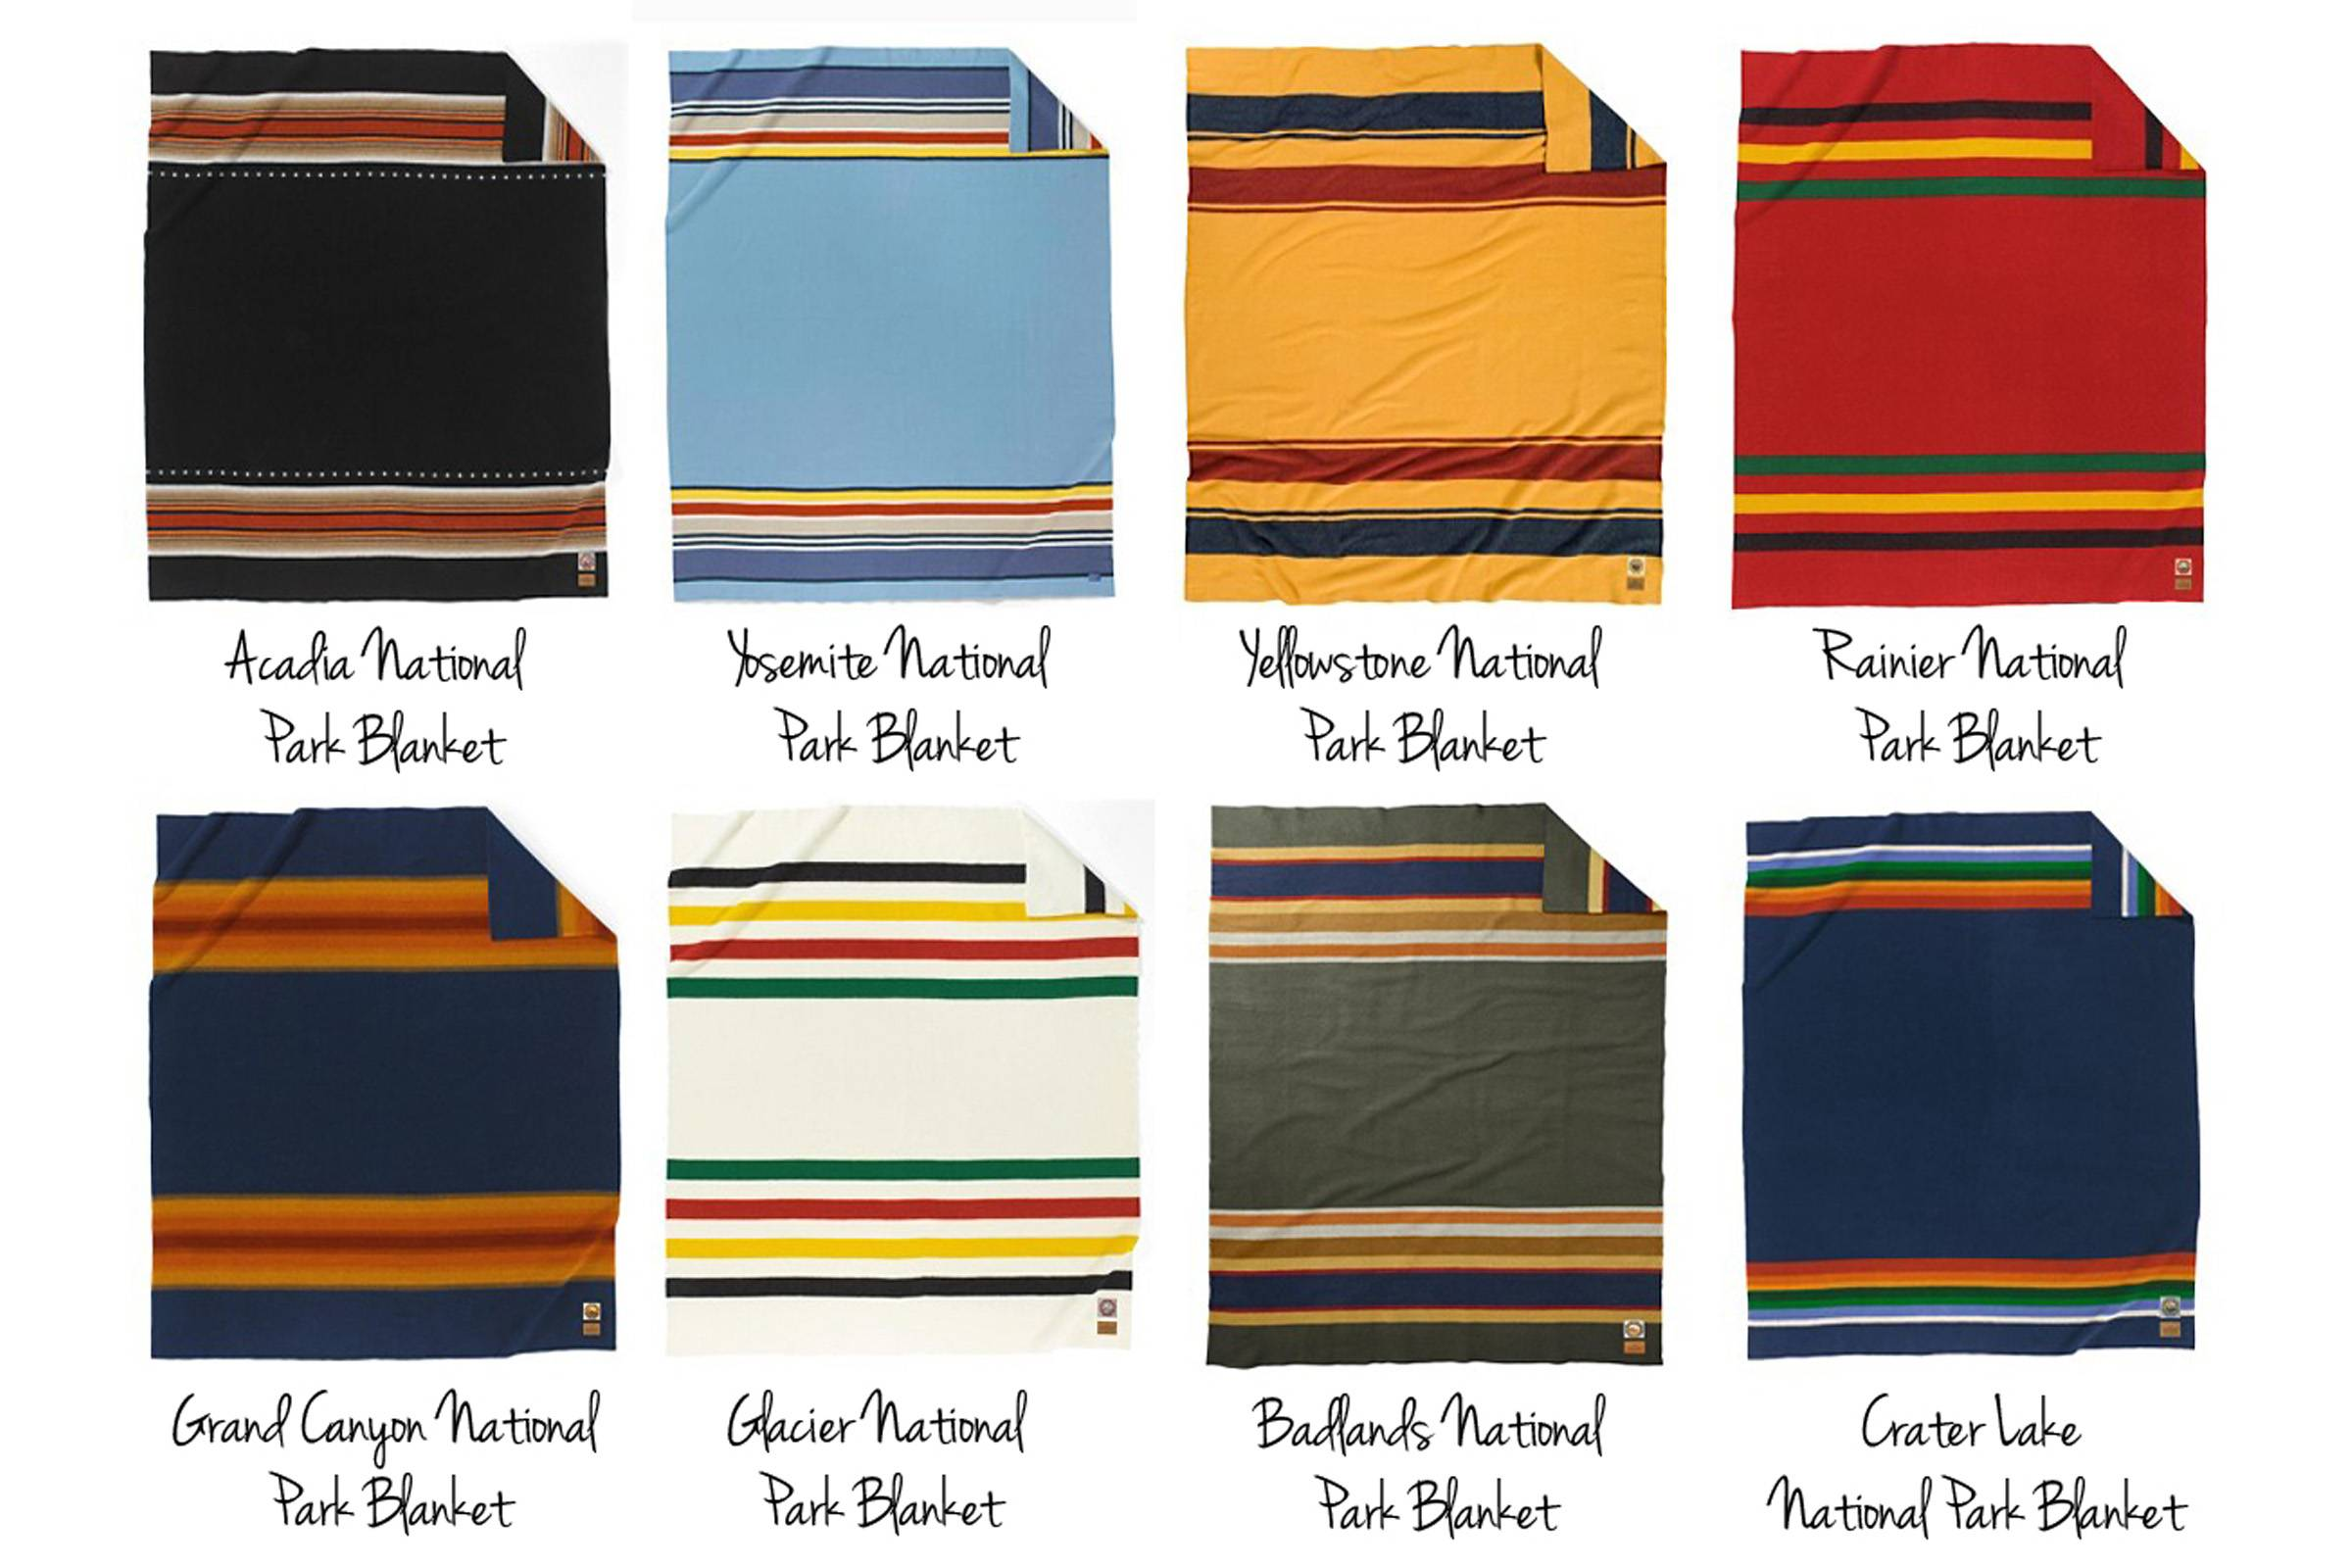 Pendleton's series of blankets honoring American National Parks